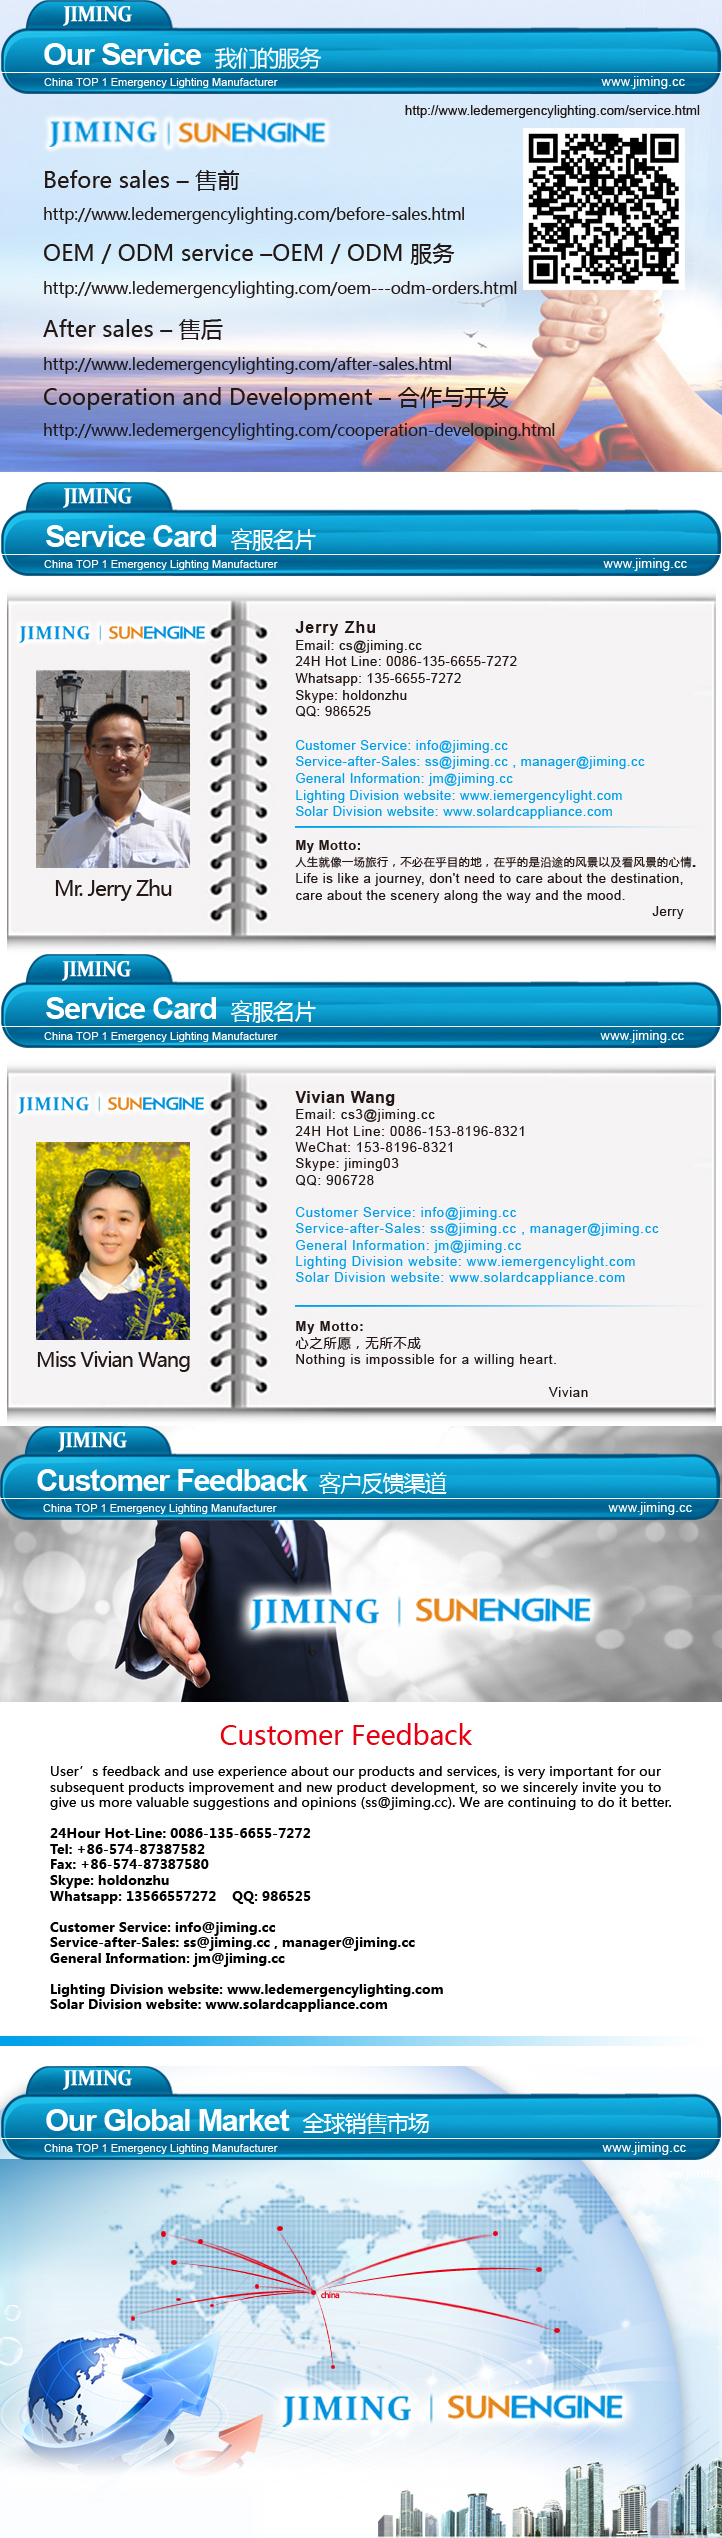 JIMIING -China TOP 1 Emergency Lighting Manufacturer Since 1967 UL&cUL Listed twin spot Emergency Light Combo JLEU5 150315ZN